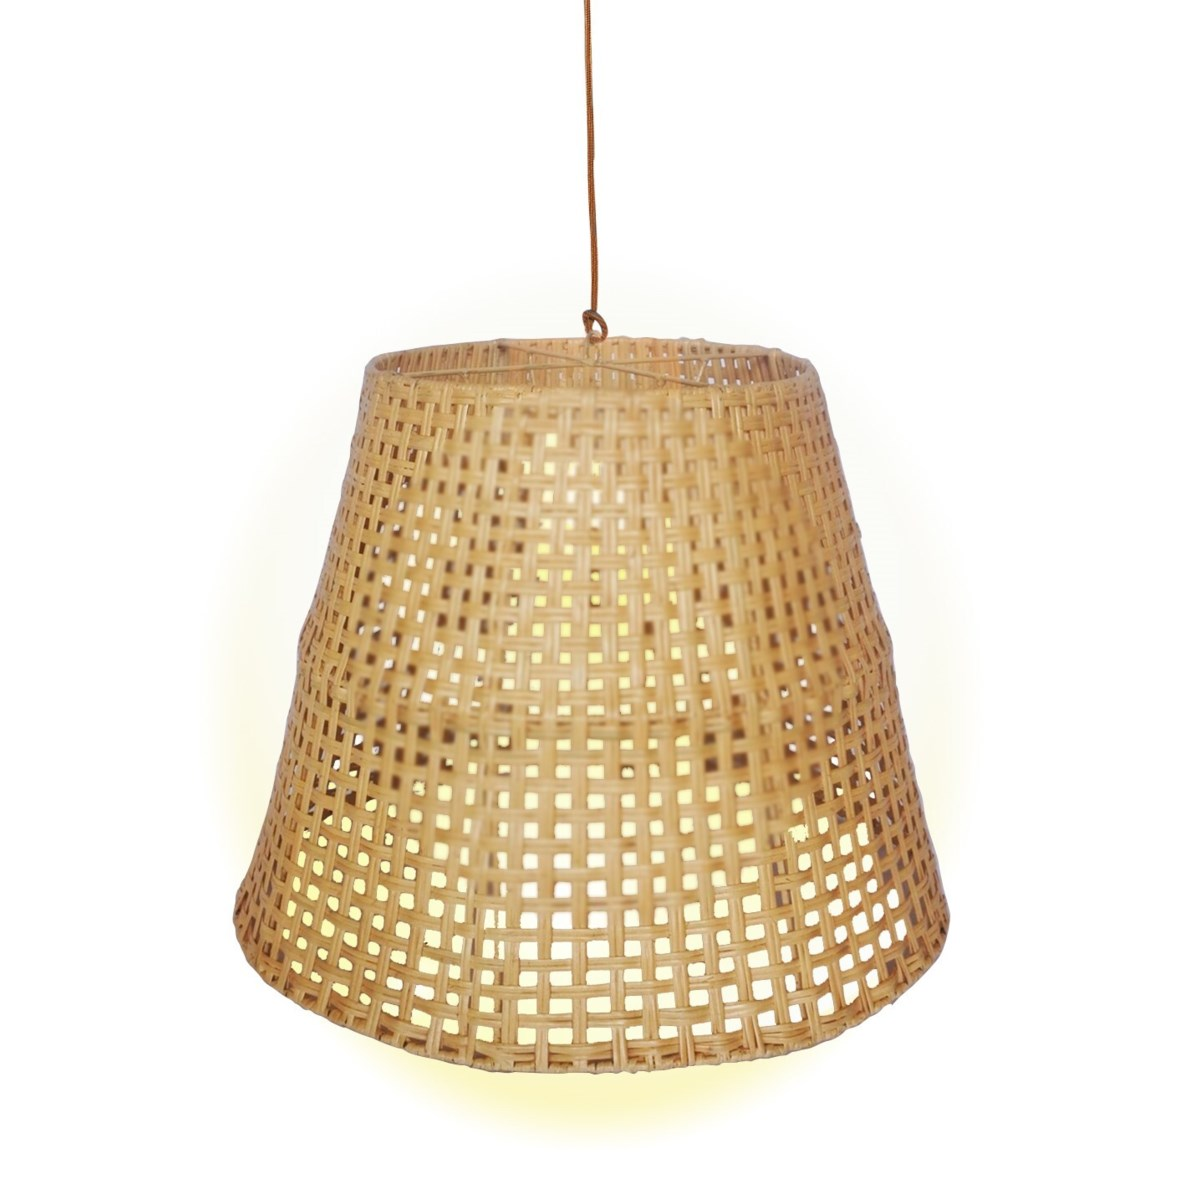 Large Basket Weave Pendant   Color - Natural (hardwired pendant kit included; 60W)CLOSE-OUT - 50